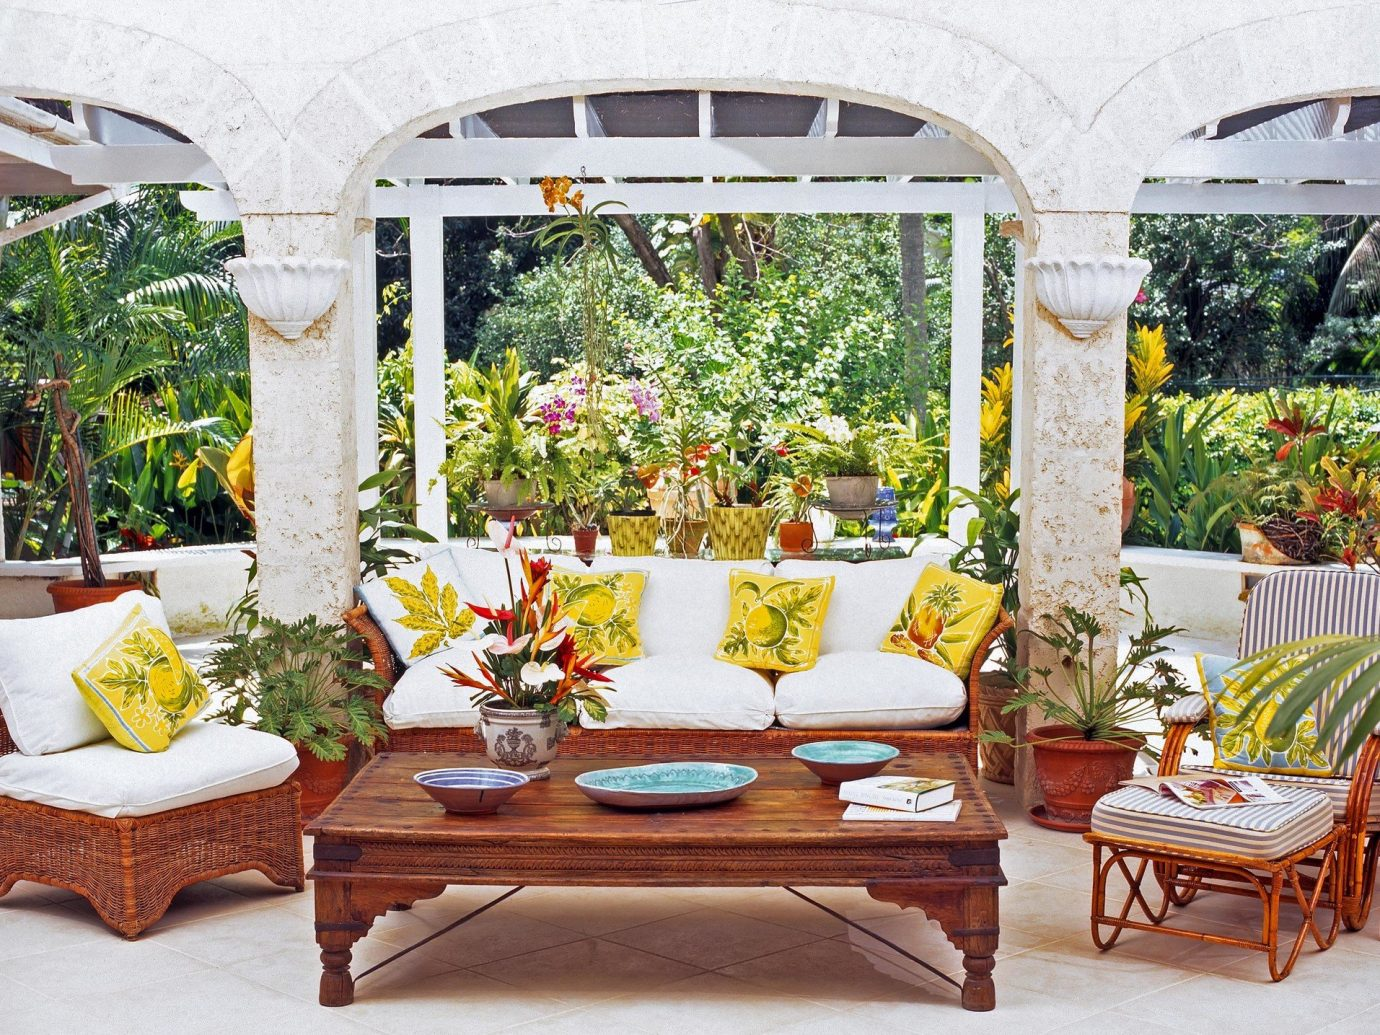 cabana calm decor detail flowers Greenery Hotels lounge chairs Luxury Nature outdoor lounge palm trees remote Scenic views serene trees Tropical building room floristry table porch outdoor structure flower backyard estate furniture window area